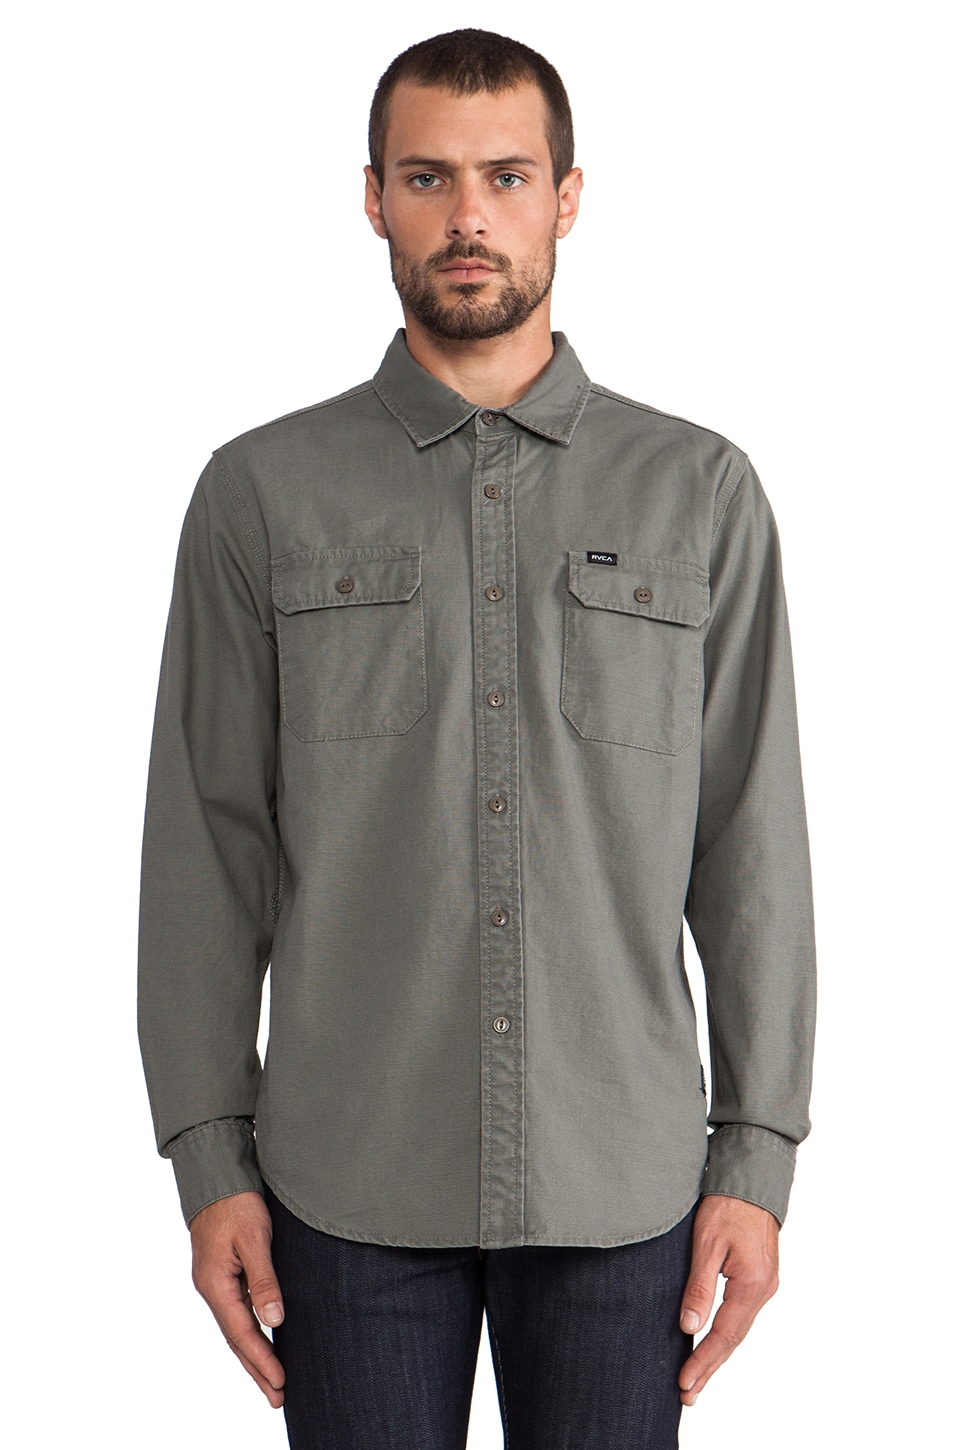 RVCA Highwayman Button Down in Castor Gray